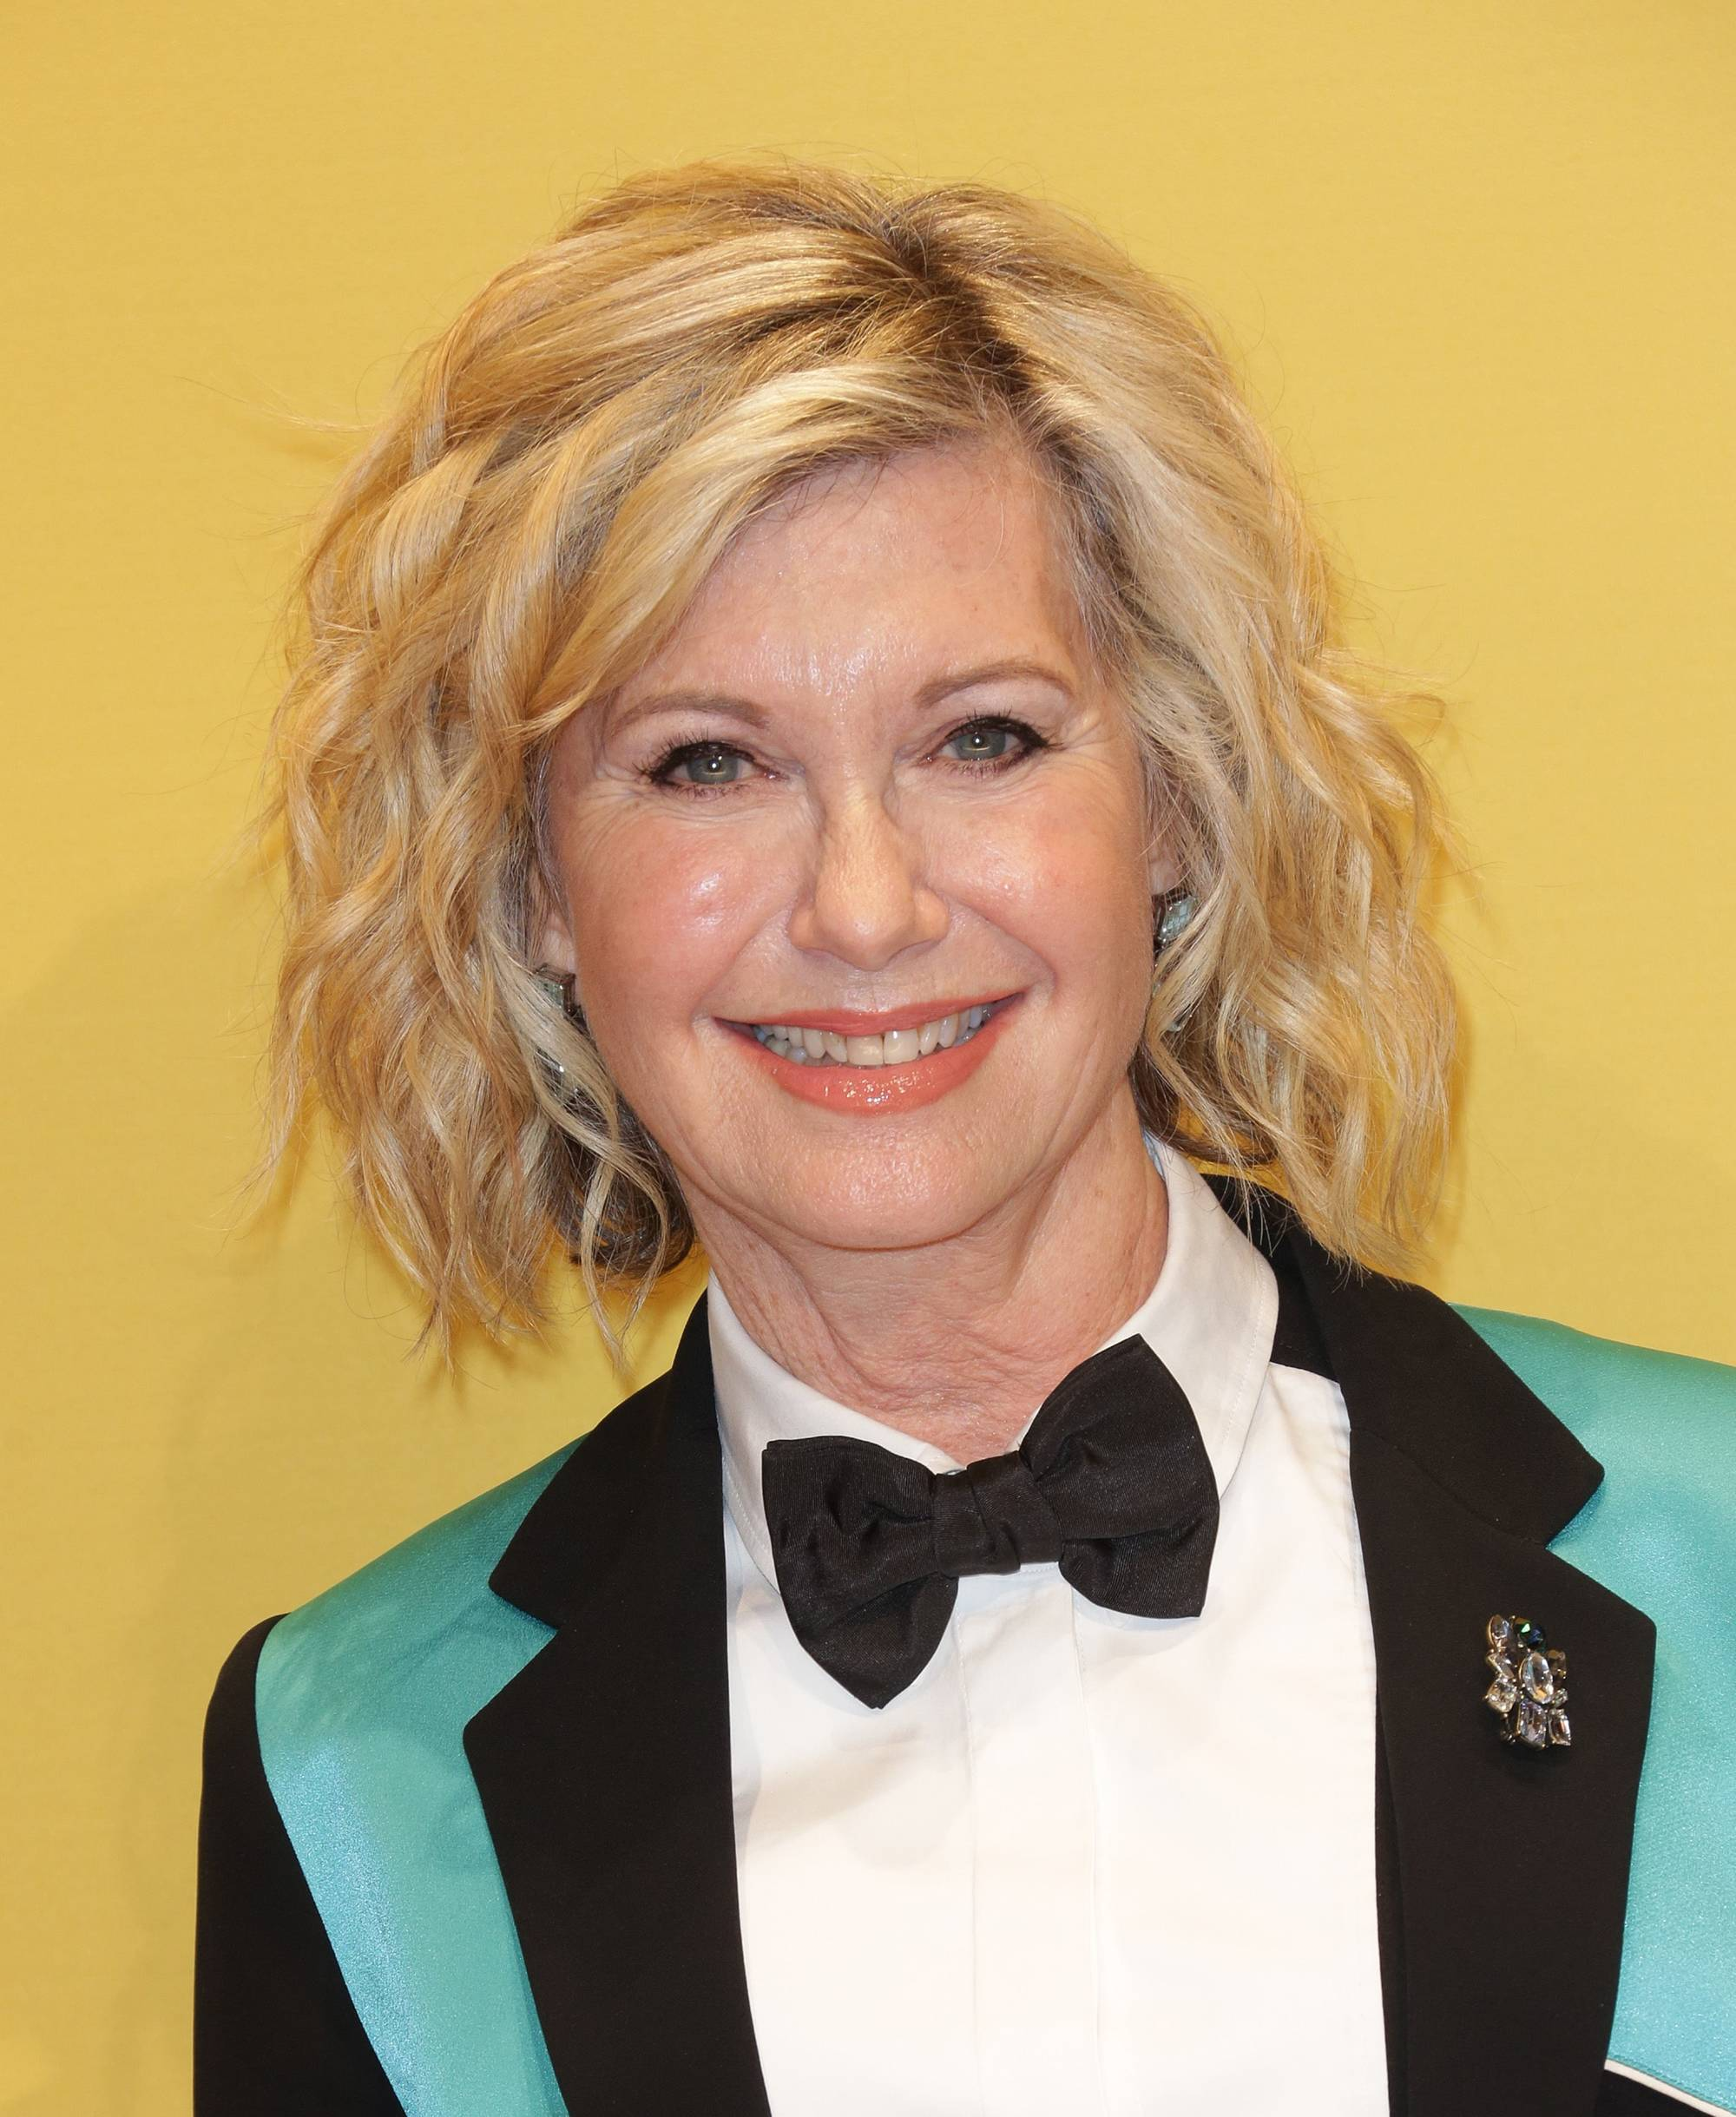 Close up of Olivia Newton John with curly bob hairstyle in teal suit